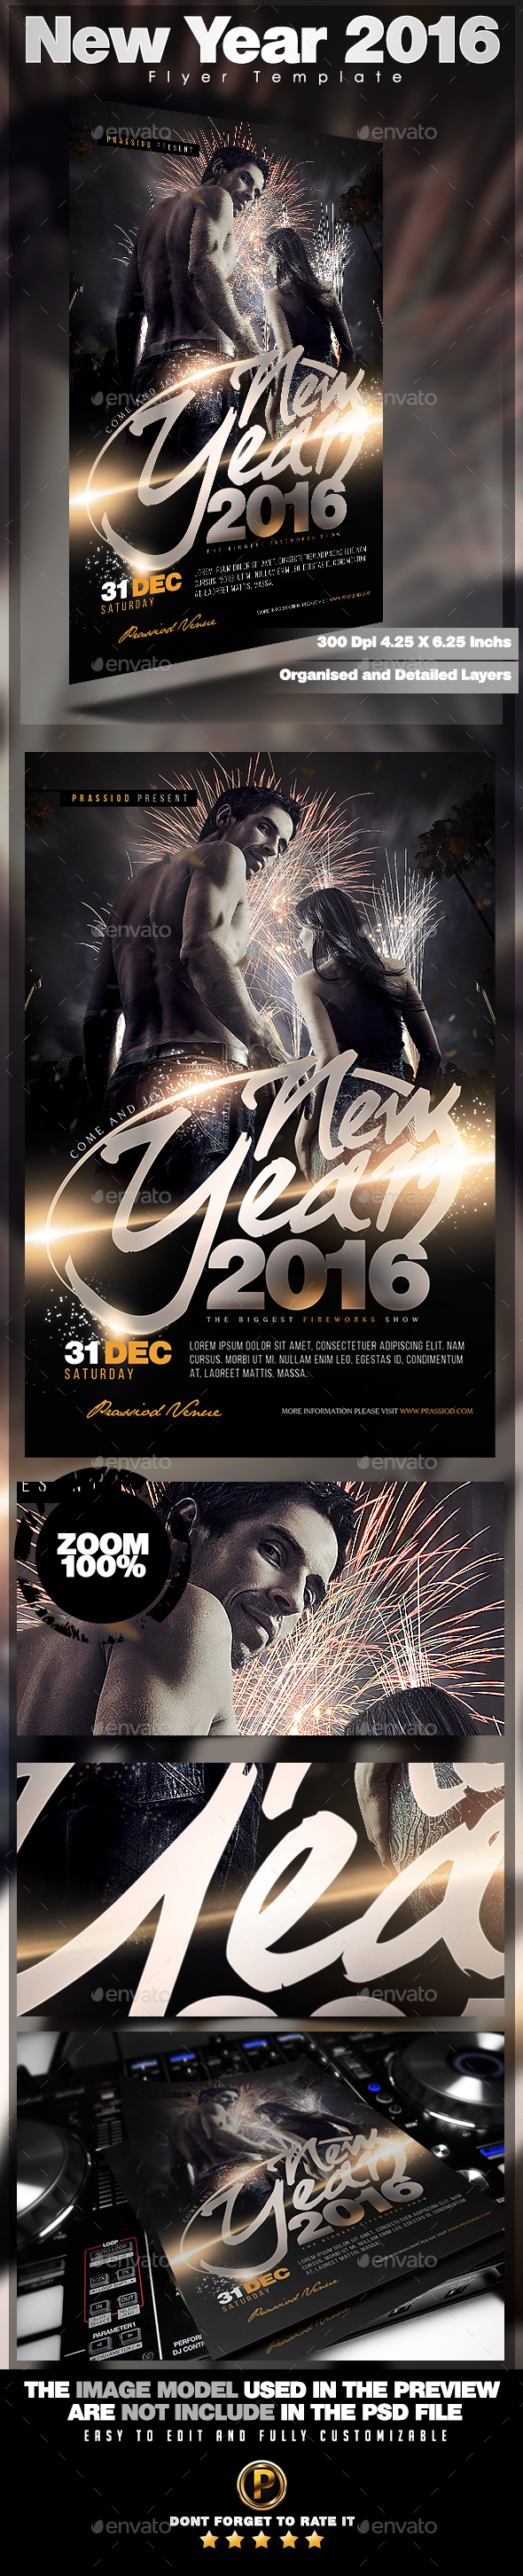 New Year 2016 Flyer Template - Holidays Events